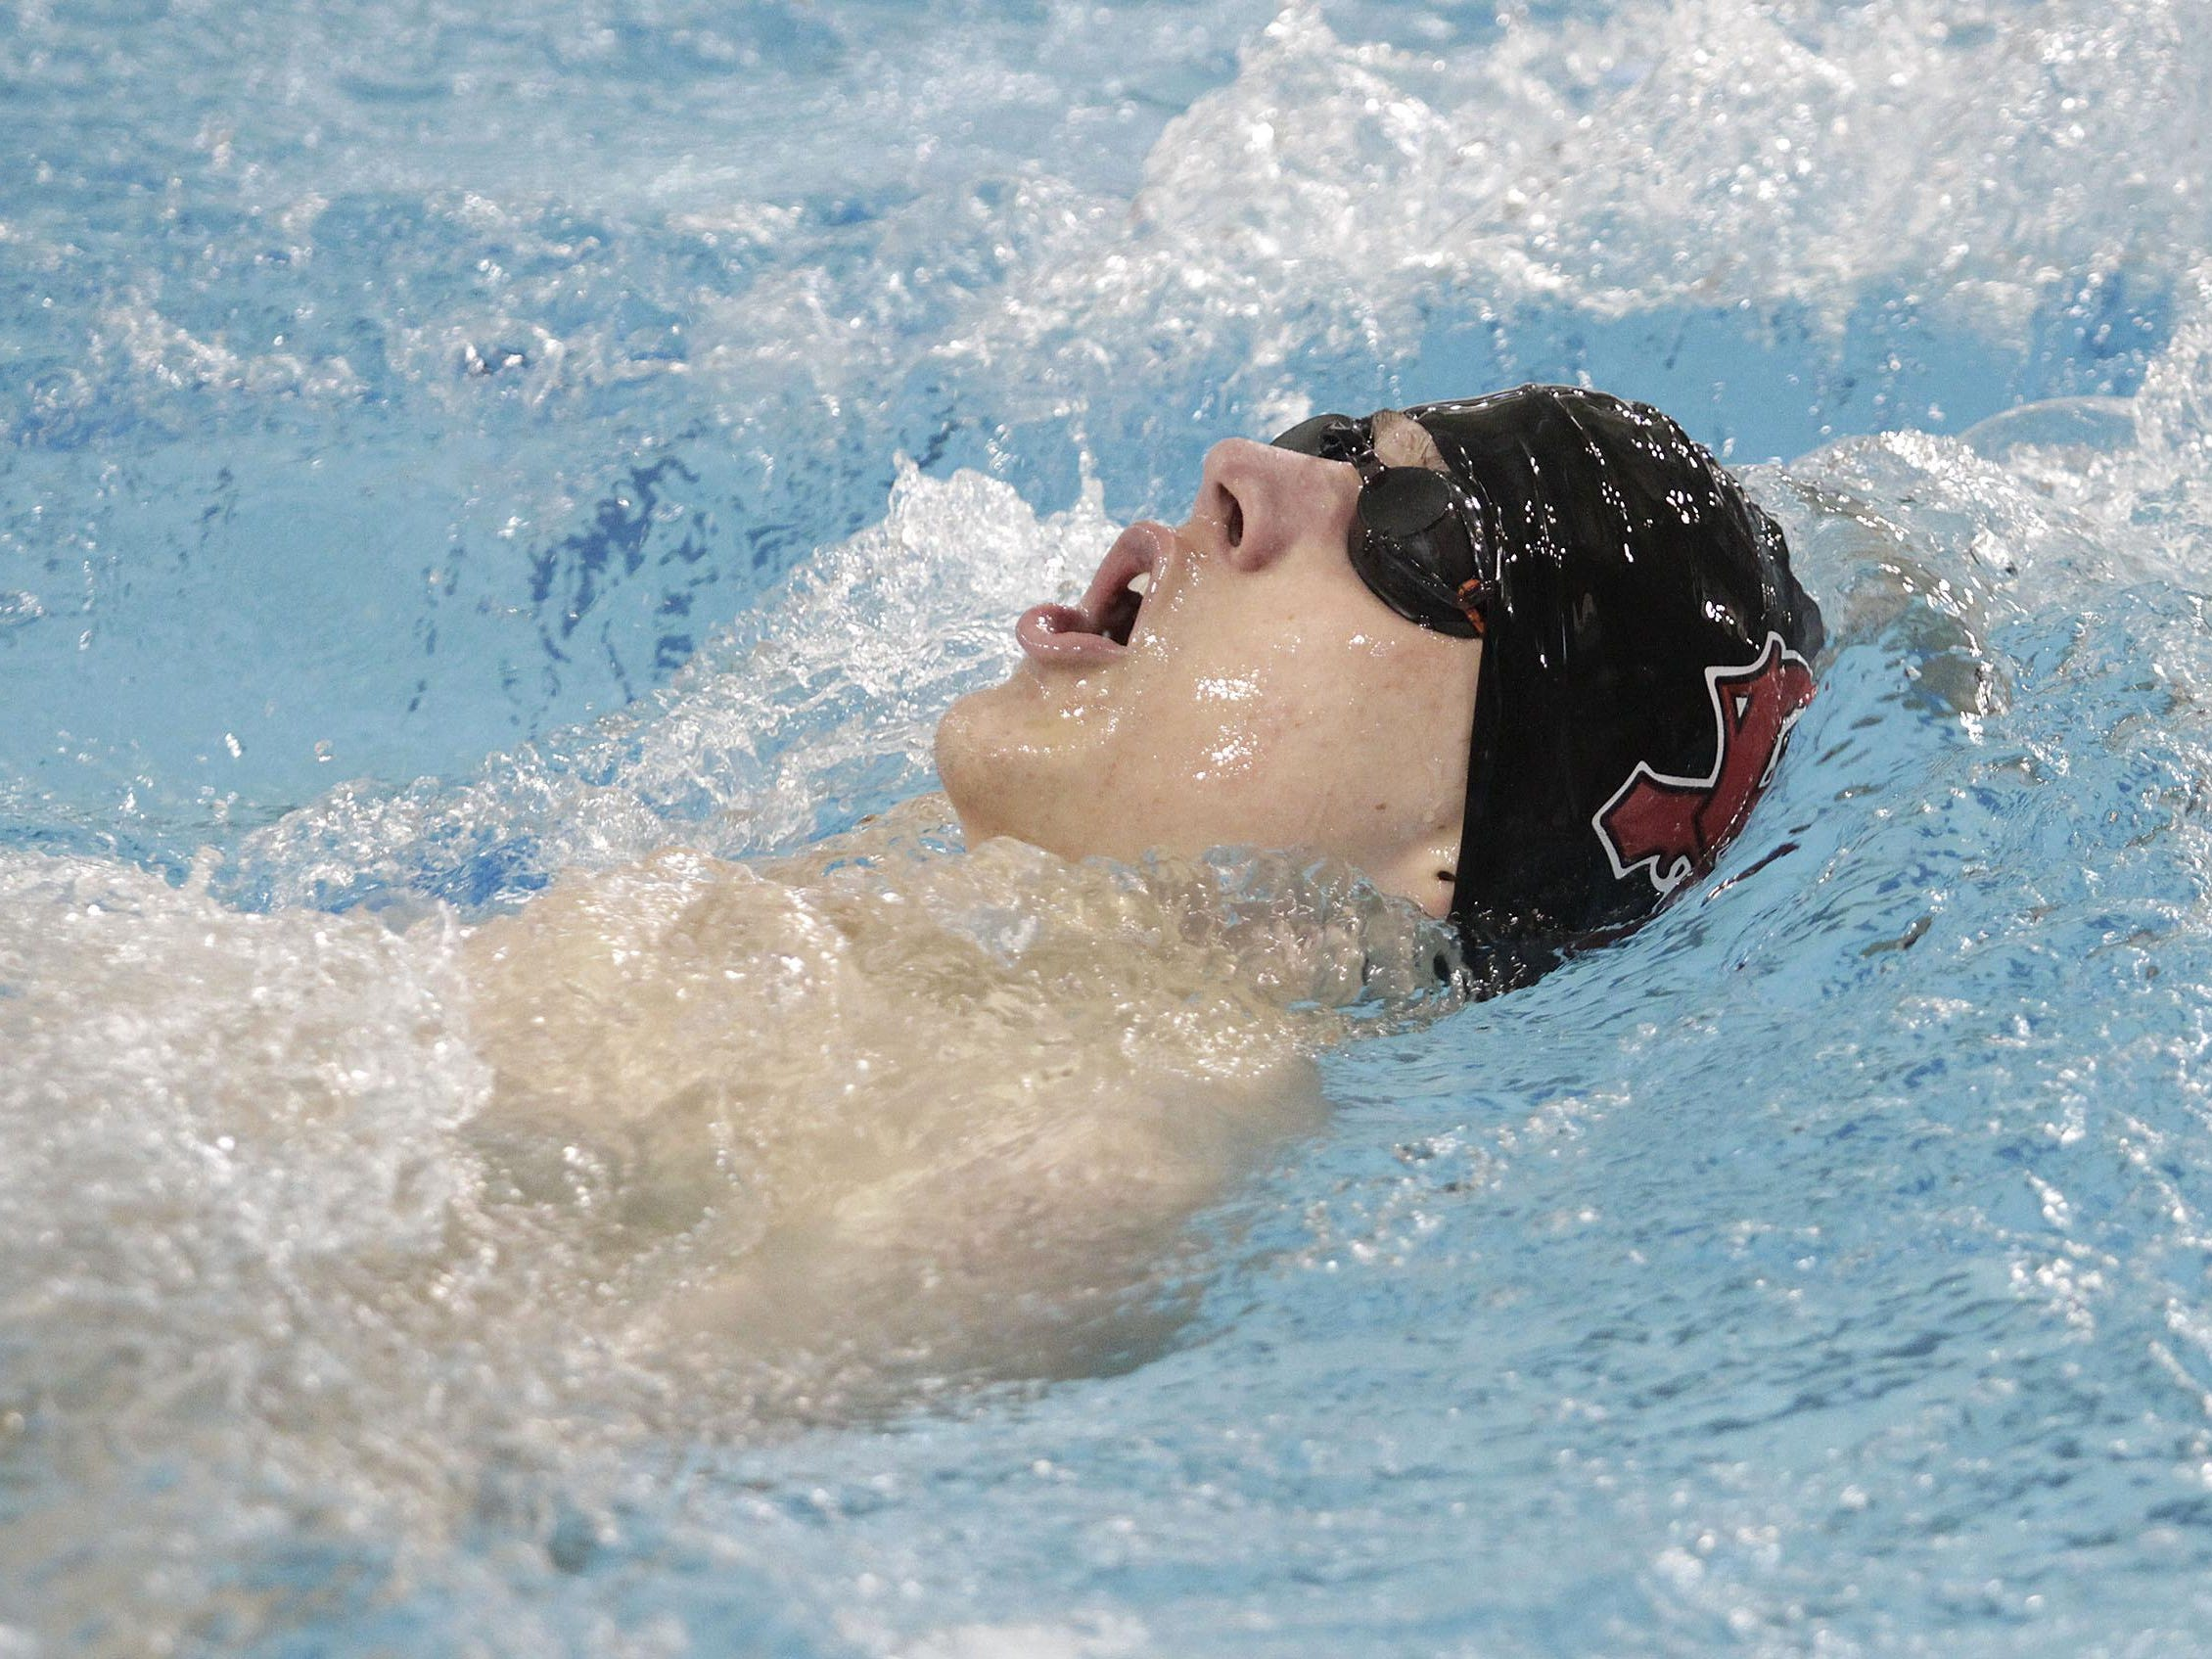 Oak Hills' Jared Cox finishes third in his heat during the 400-yard individual medley with a time of 4:50.94 at the Southwest Ohio Classic last season